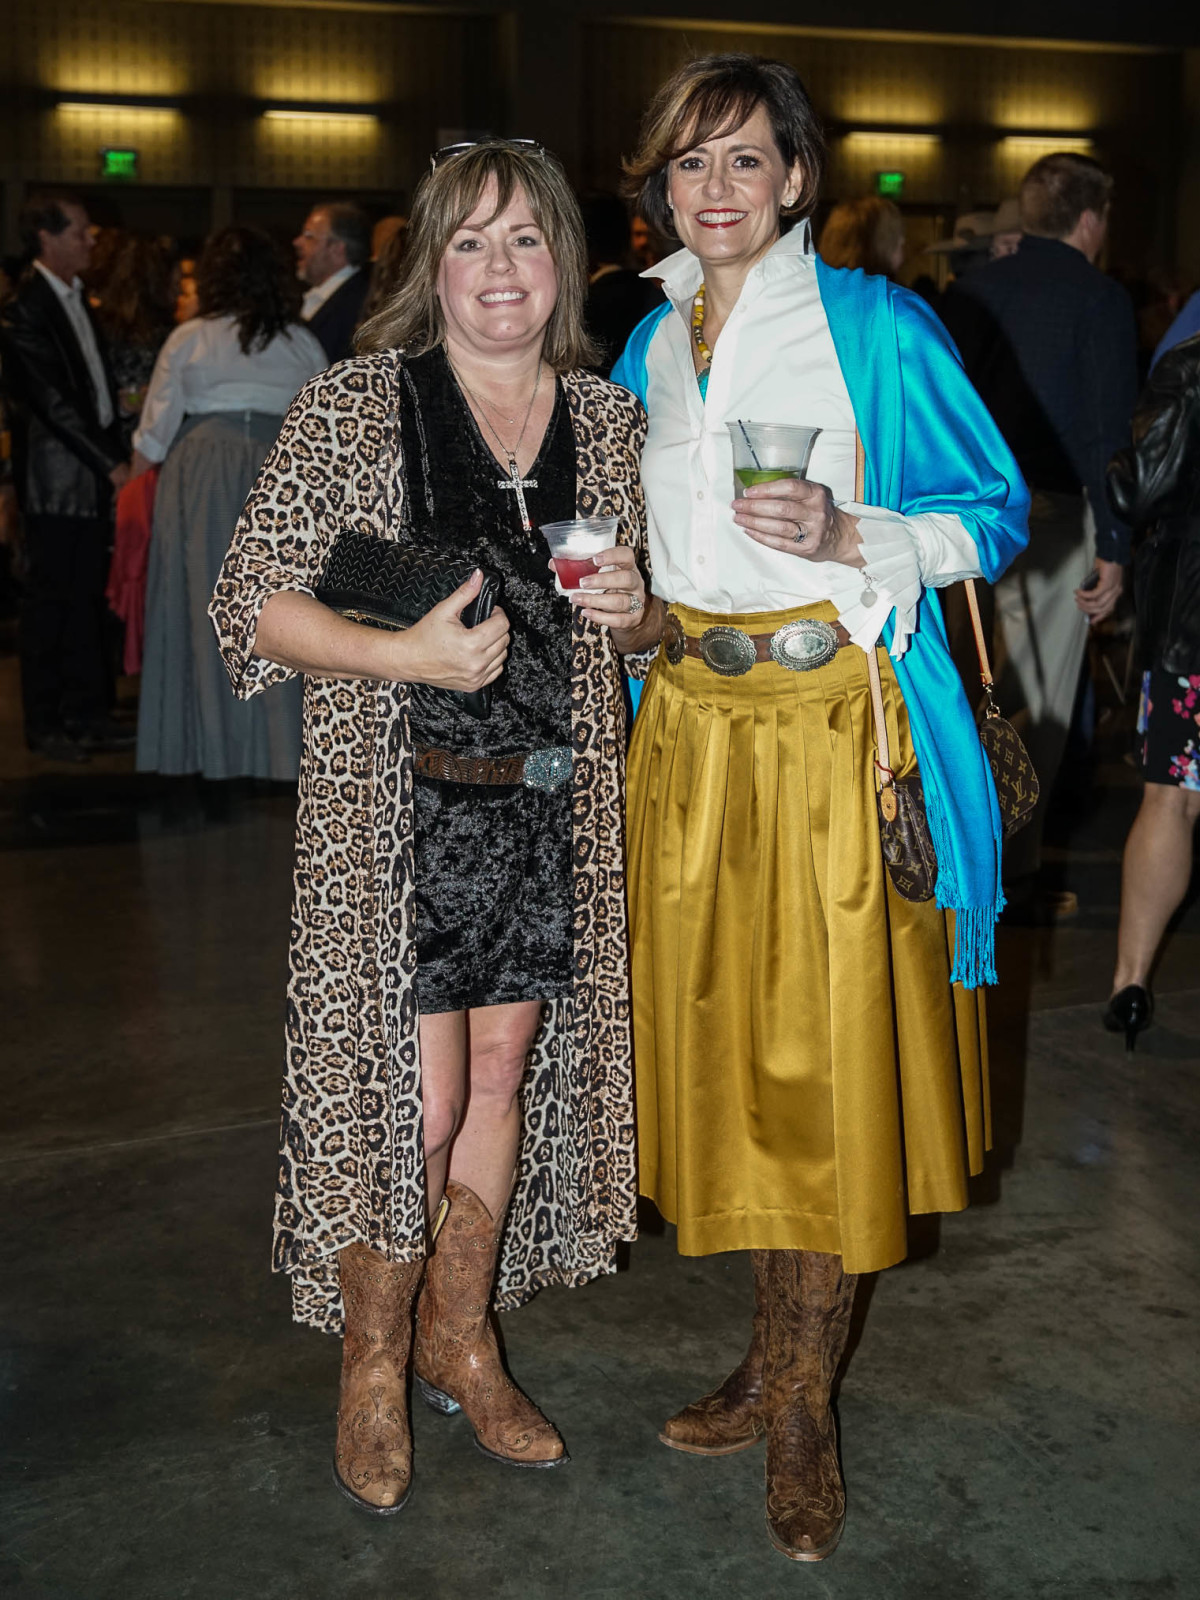 Austin Rodeo Gala 2018 Fashion Millie Hamann Michelle Hutcheson